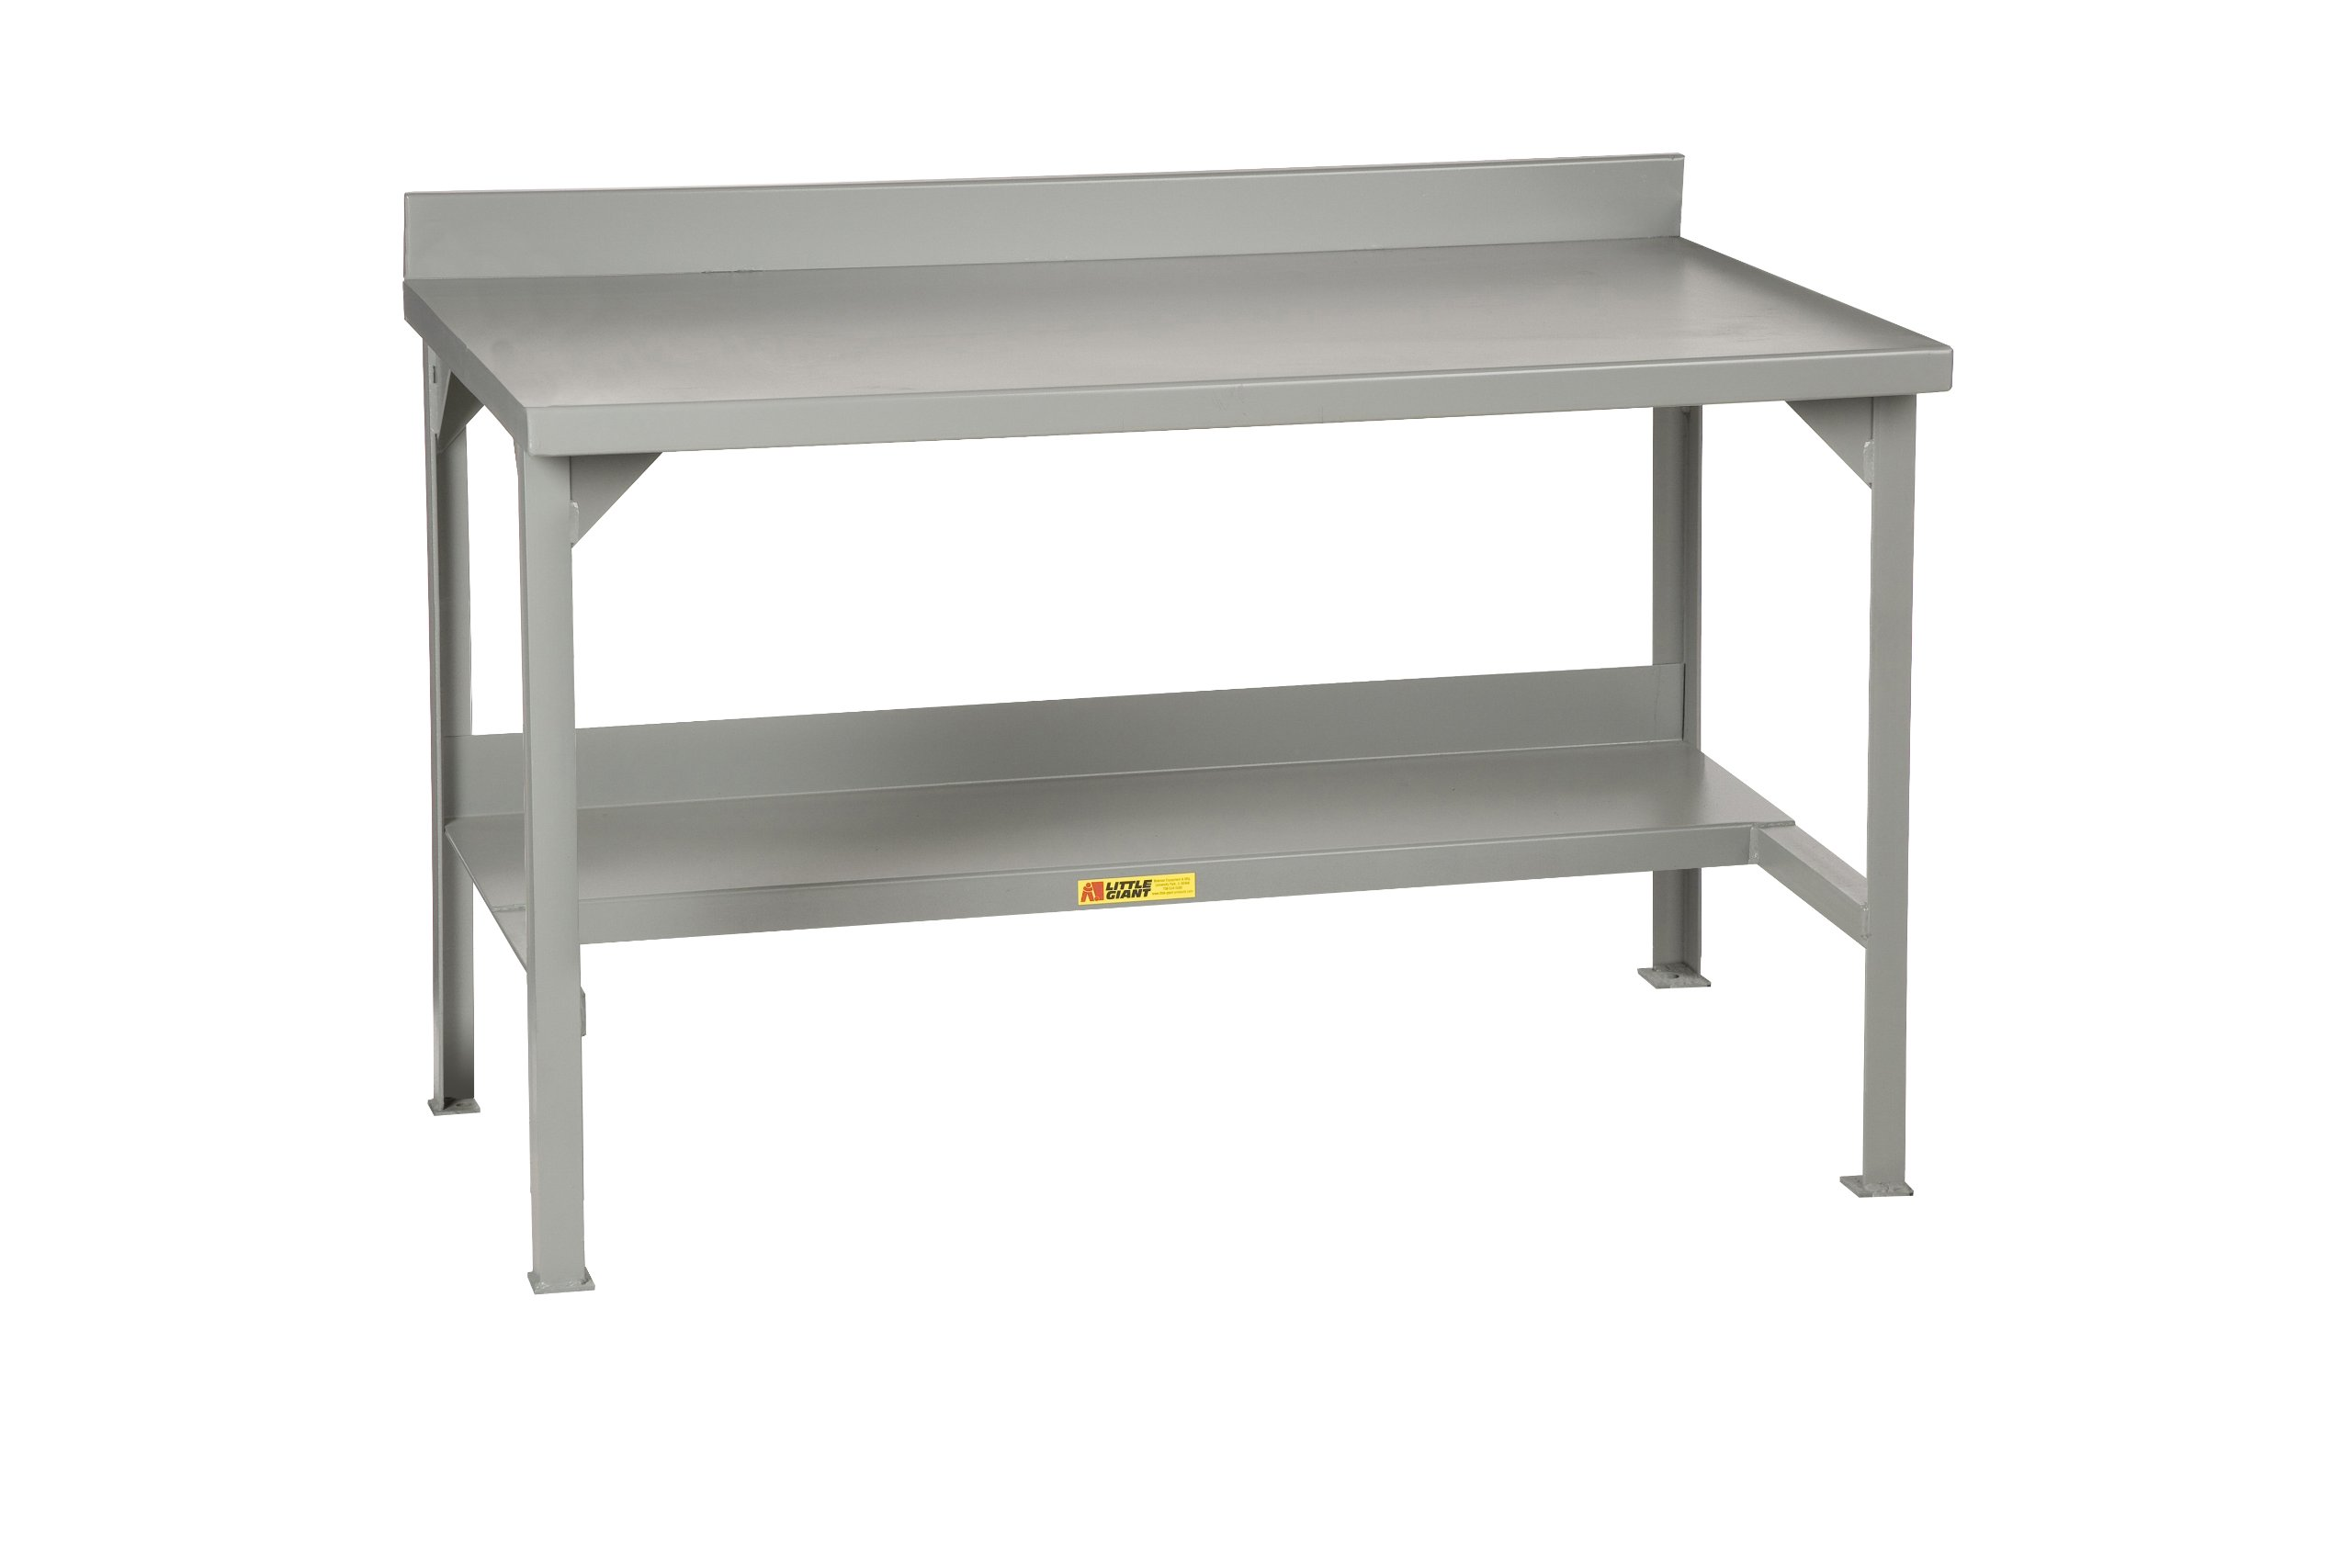 Little Giant WB-2860-E-P Welded Steel Workbench with Back Stop, 2 End Stops, Power Strip, 1 Half-Shelf, 3000 lb. Load Capacity, 36 x 60'' x 28'', Gray